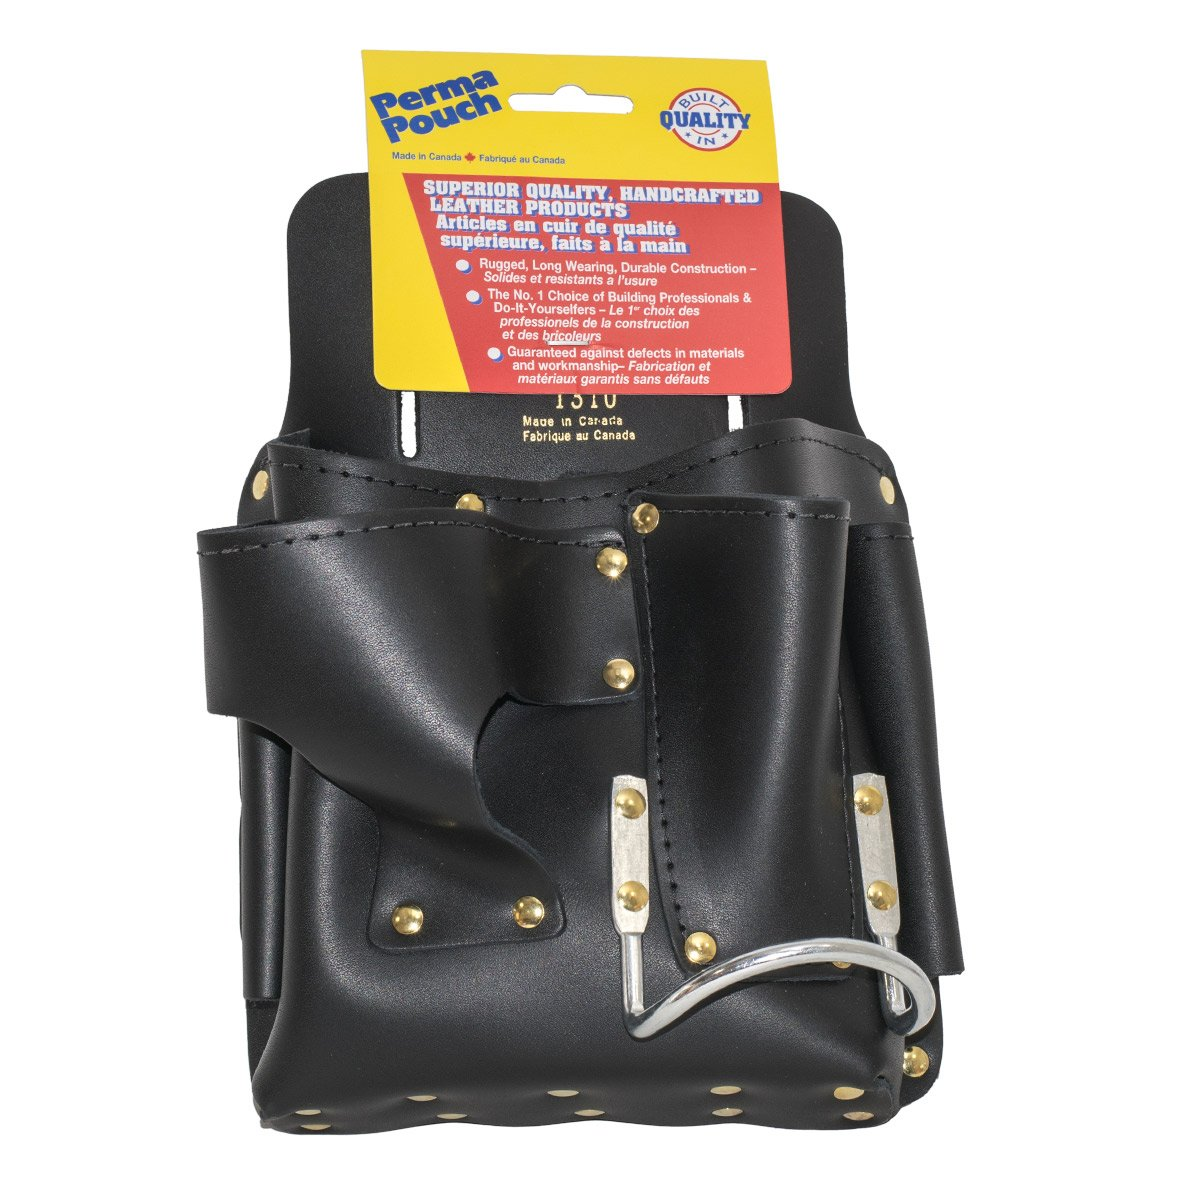 Perma Pouch Top Grain Latigo Leather Drywall Tool Pouch by Perma Pouch